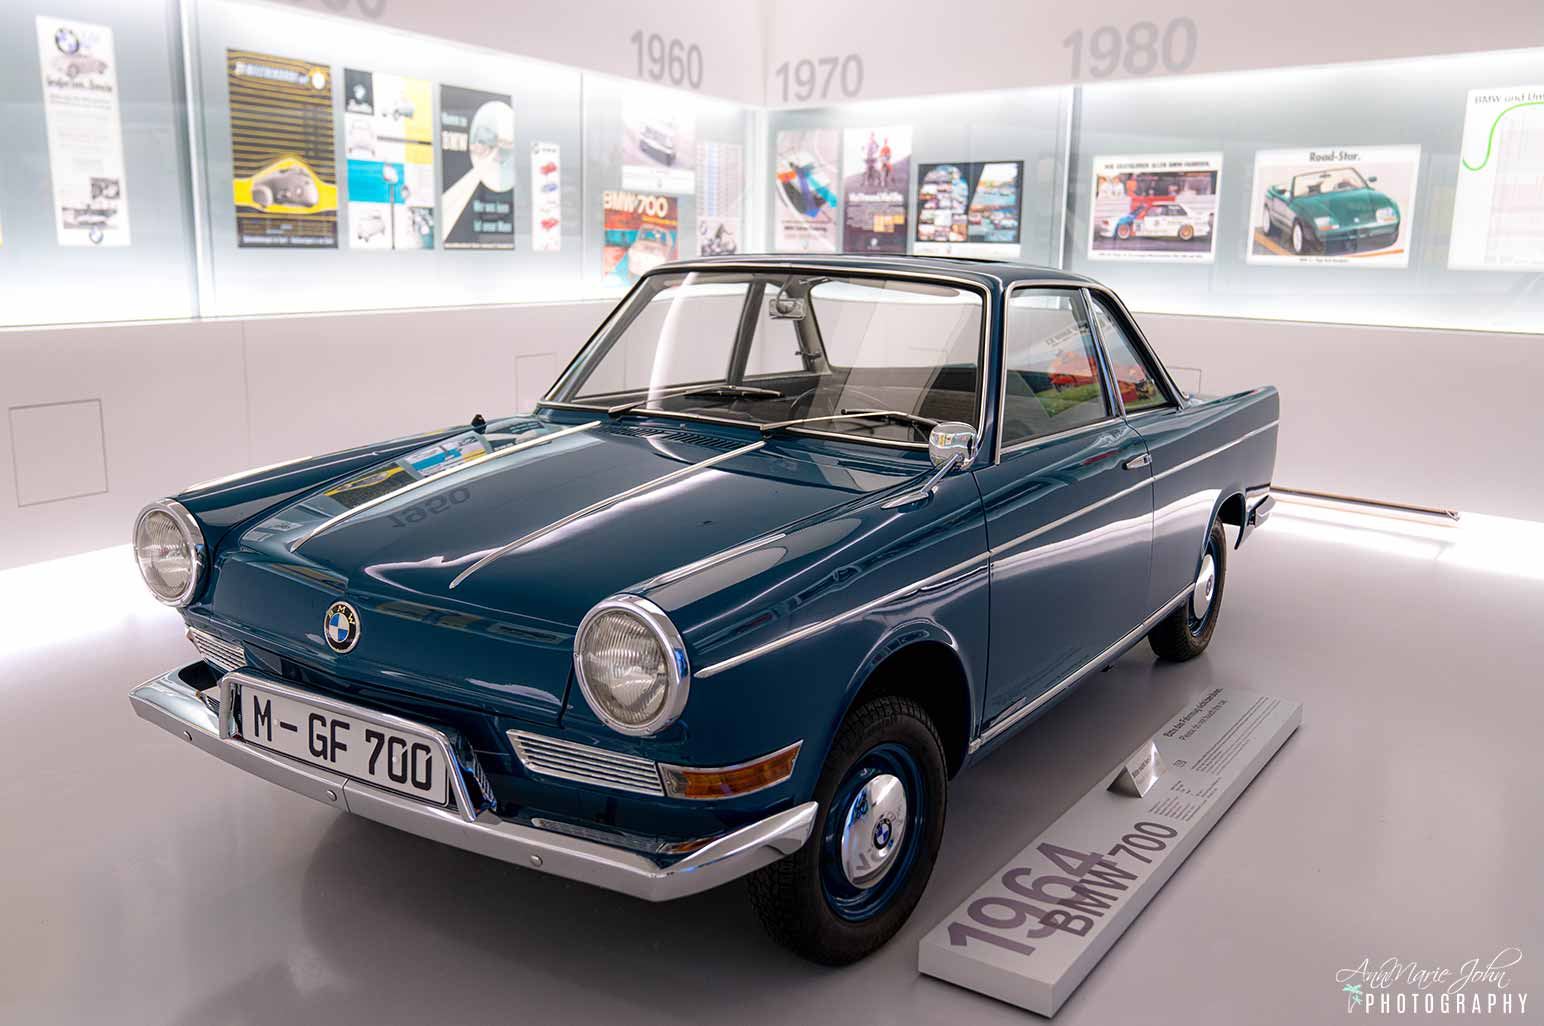 1964 BMW 700 in the BMW Museum, Munich